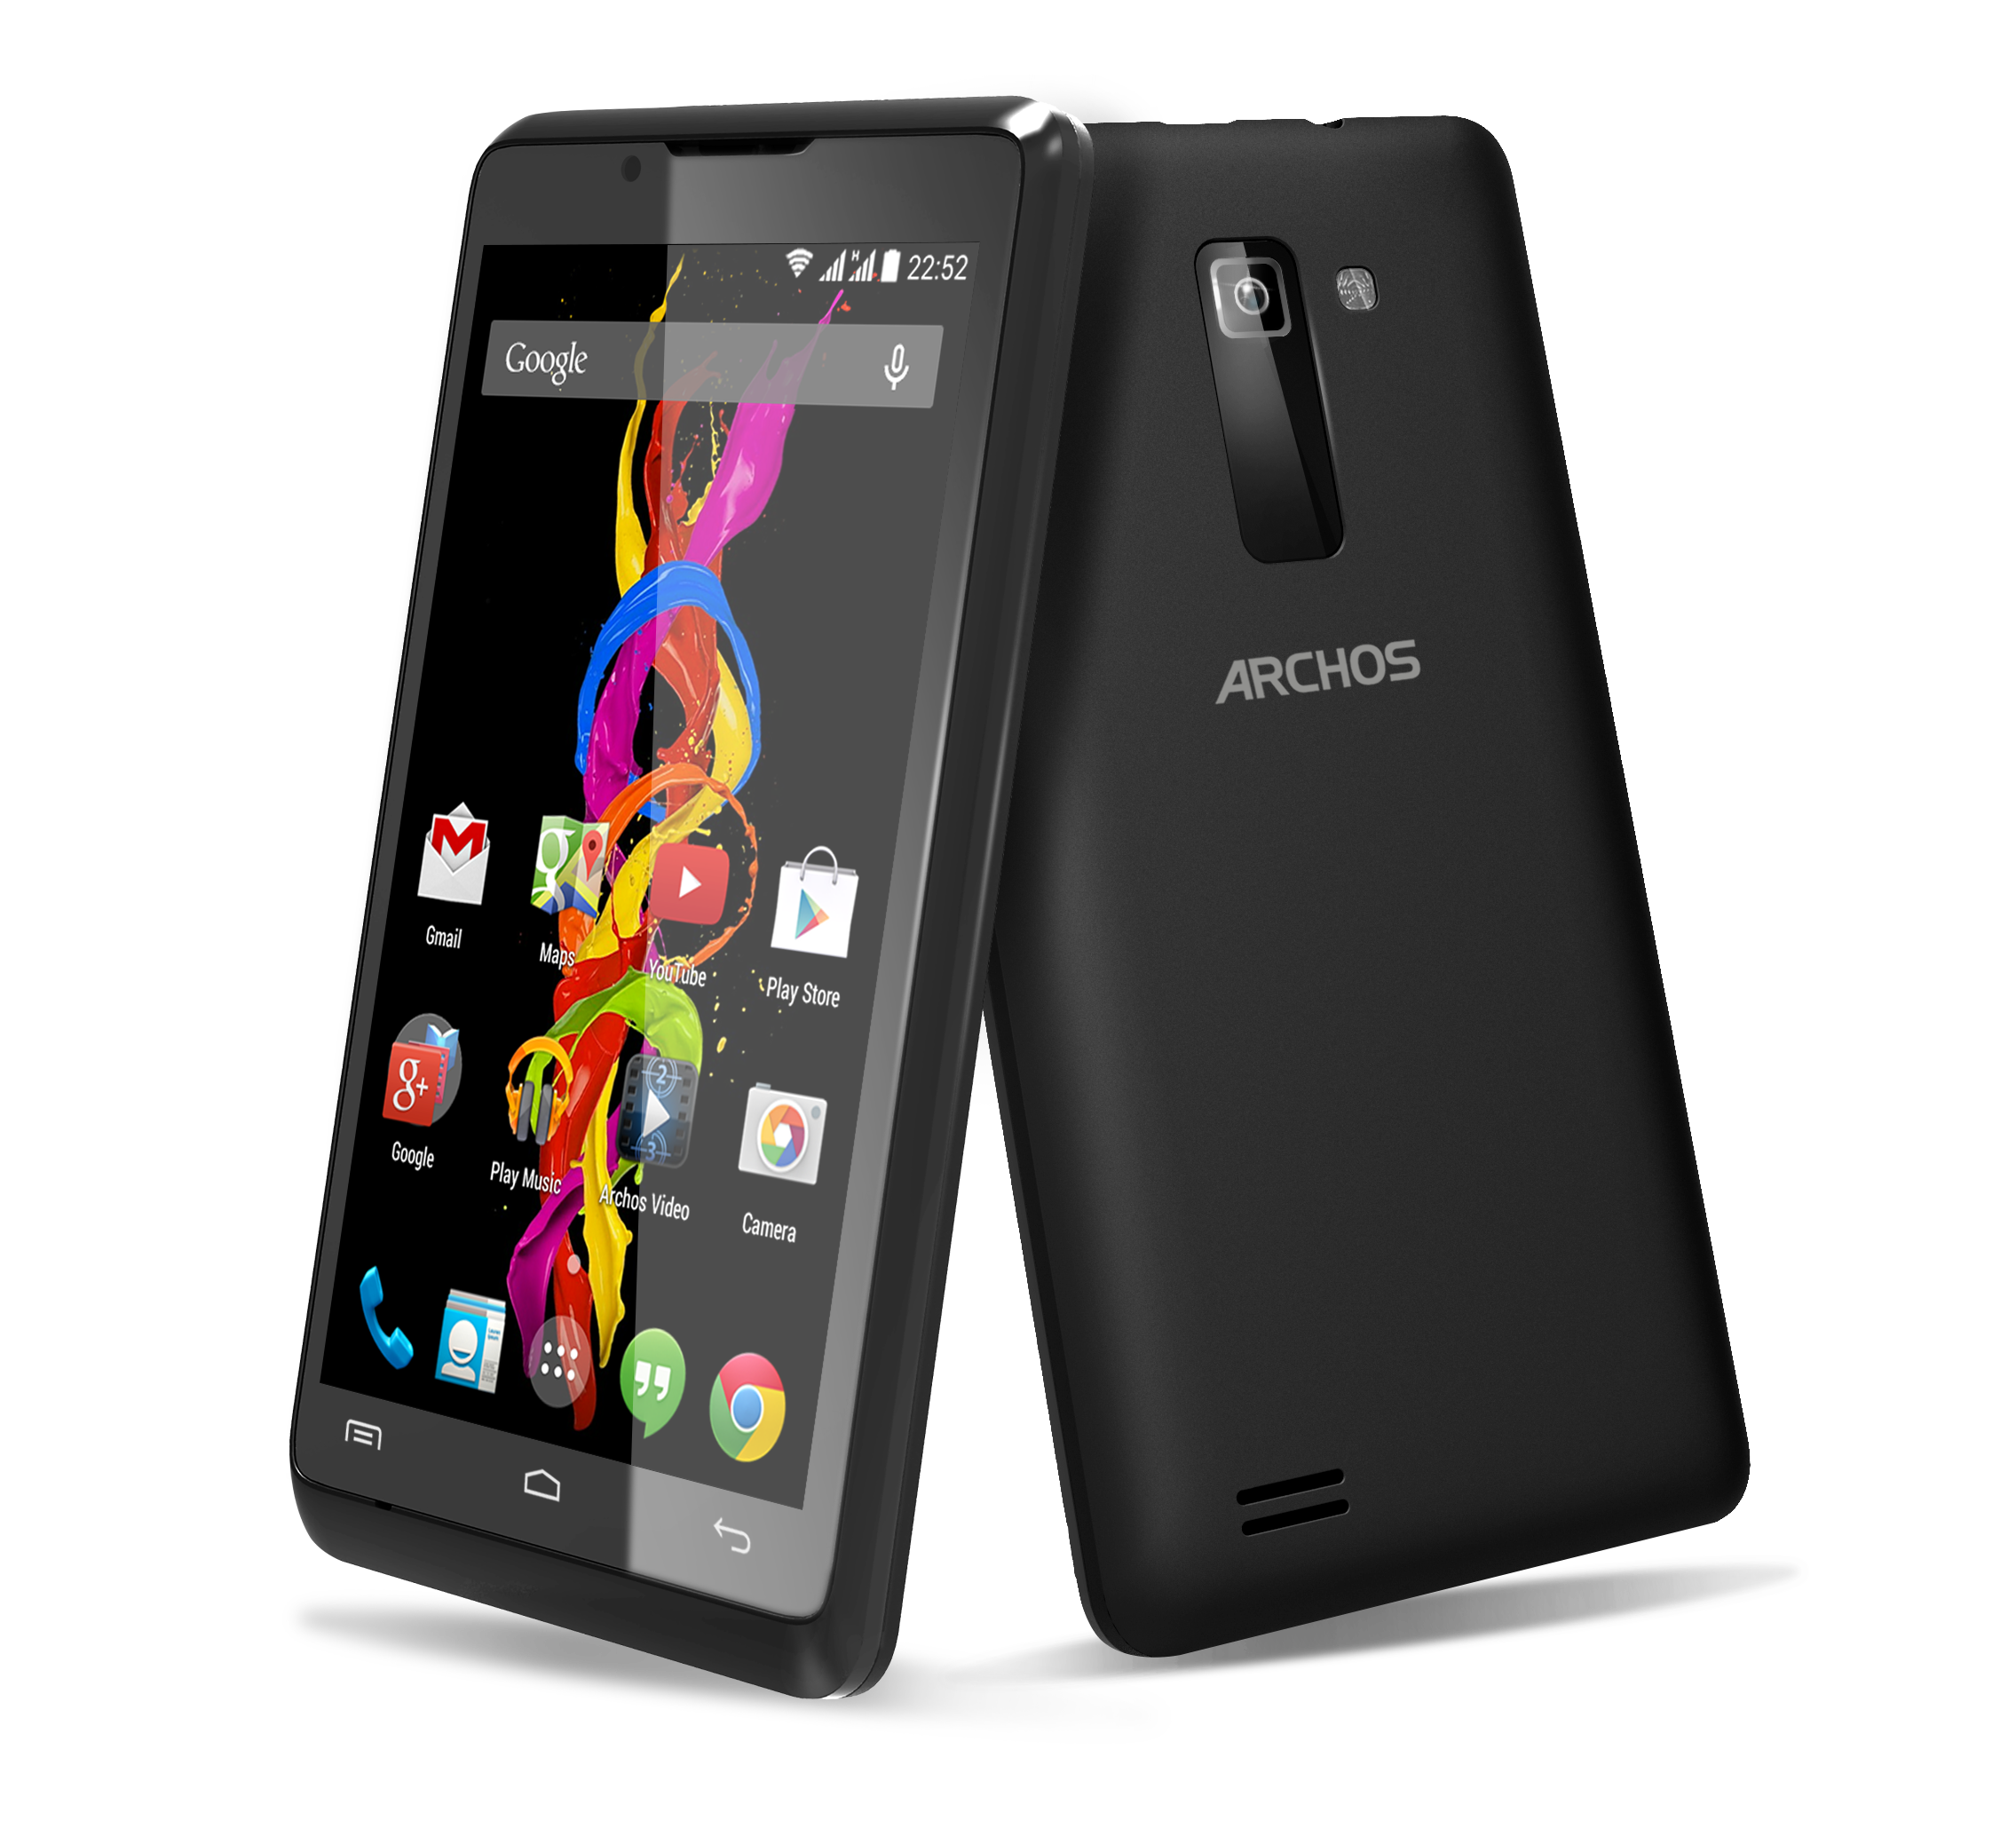 archos 35b titanium colorful affordable smartphone from archosarctablet news arctablet news. Black Bedroom Furniture Sets. Home Design Ideas